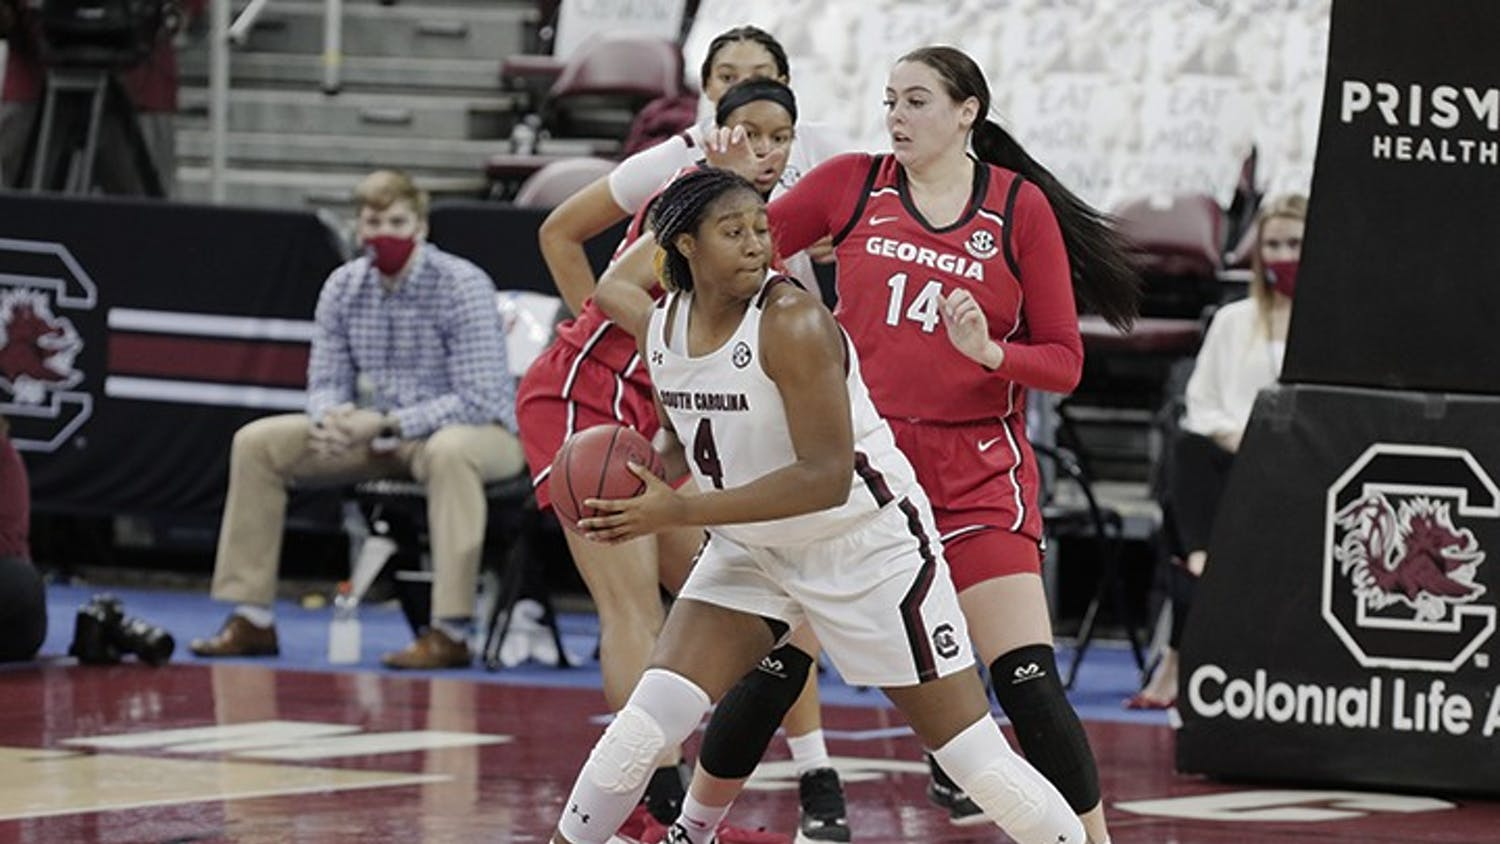 South Carolina Gamecocks forward Aliyah Boston (4) is defended by Georgia Lady Bulldogs center Jenna Staiti (14) at Colonial Life Arena on Thursday, January 21, 2021.